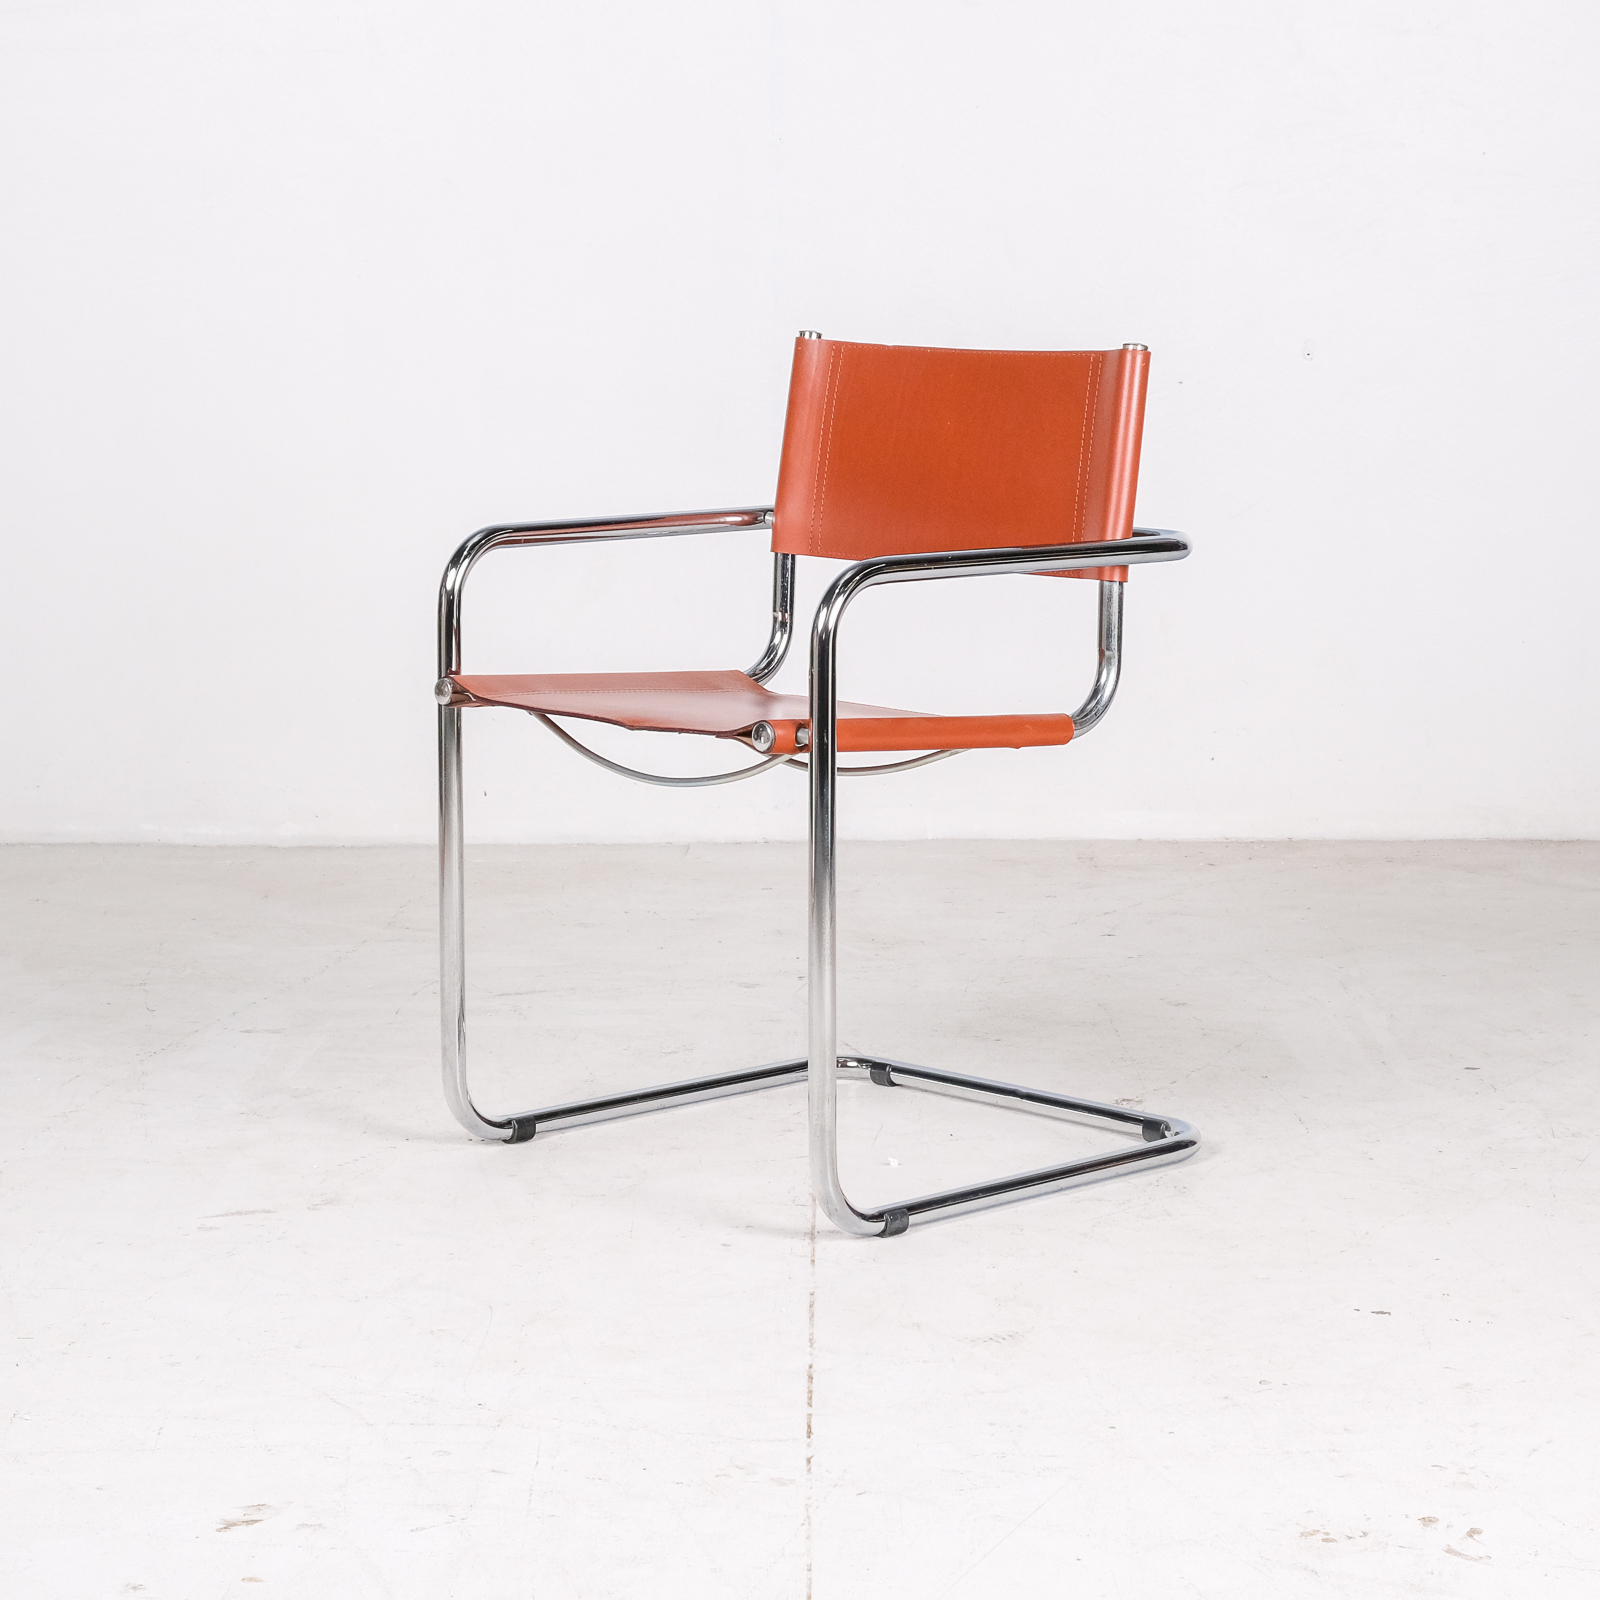 Set Of 4 Model S34 Cantilever Chairs In Cognac Leather By Mart Stam For Thonet, 1980s, Germany005